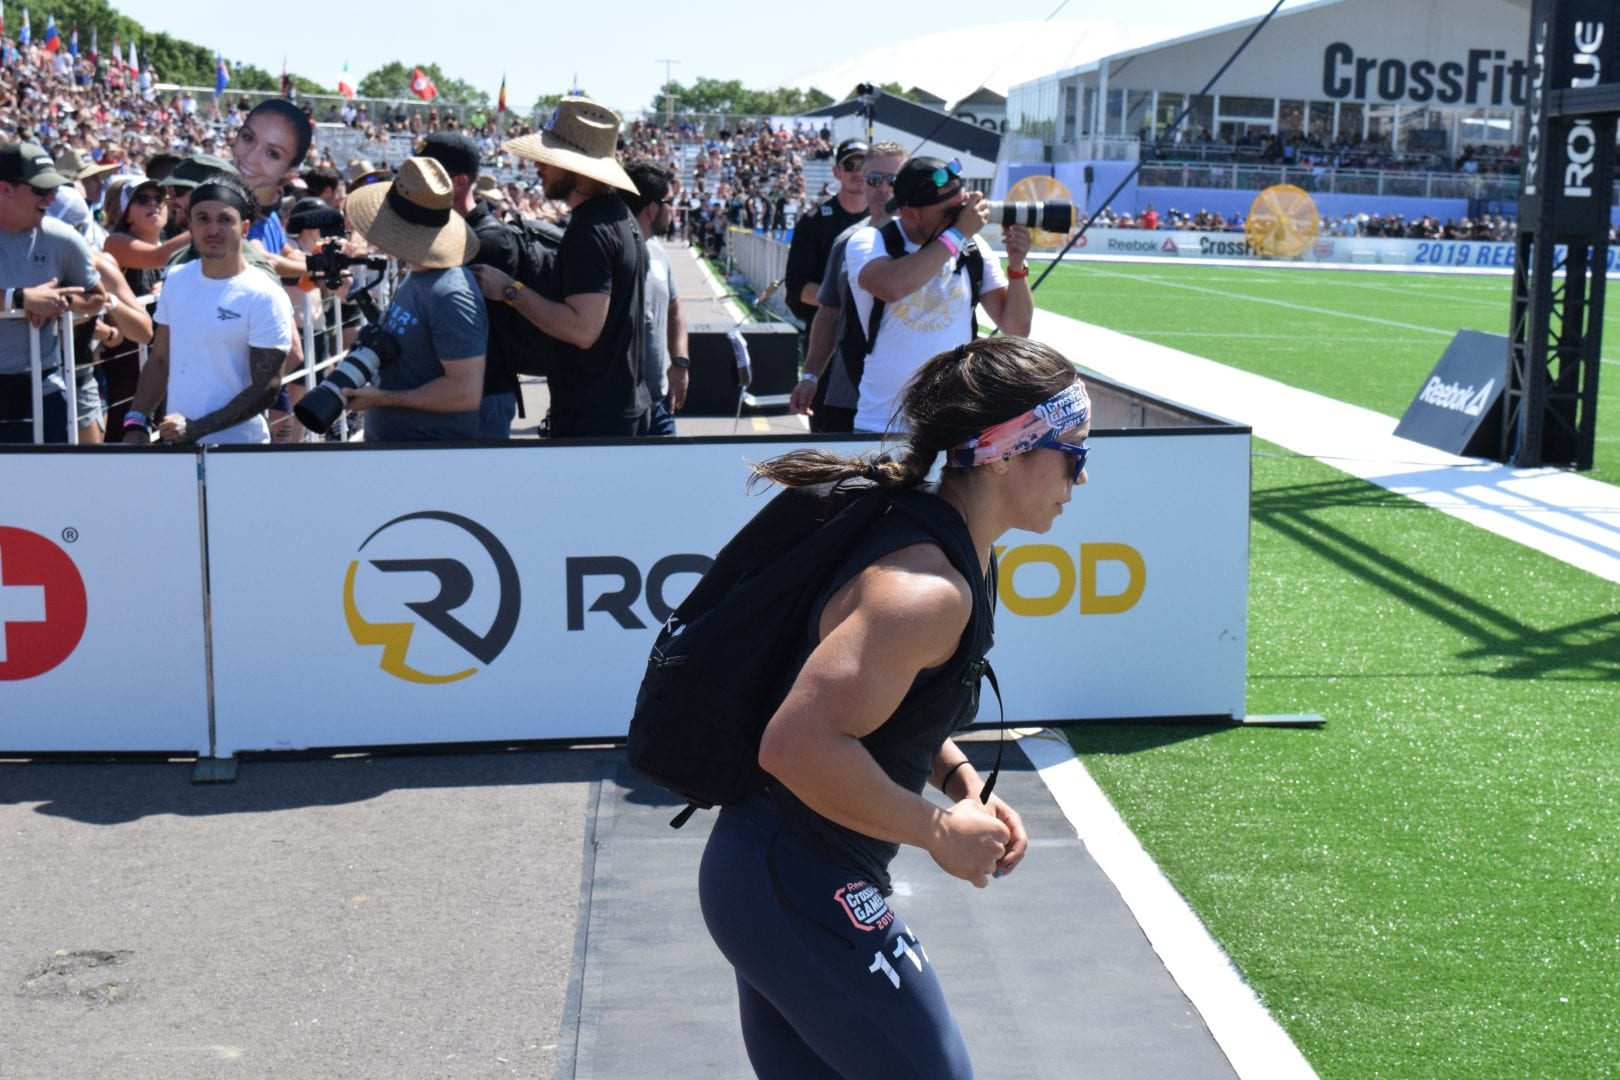 Feeroozeh Saghafi competes in the Ruck Run event at the 2019 CrossFit Games.